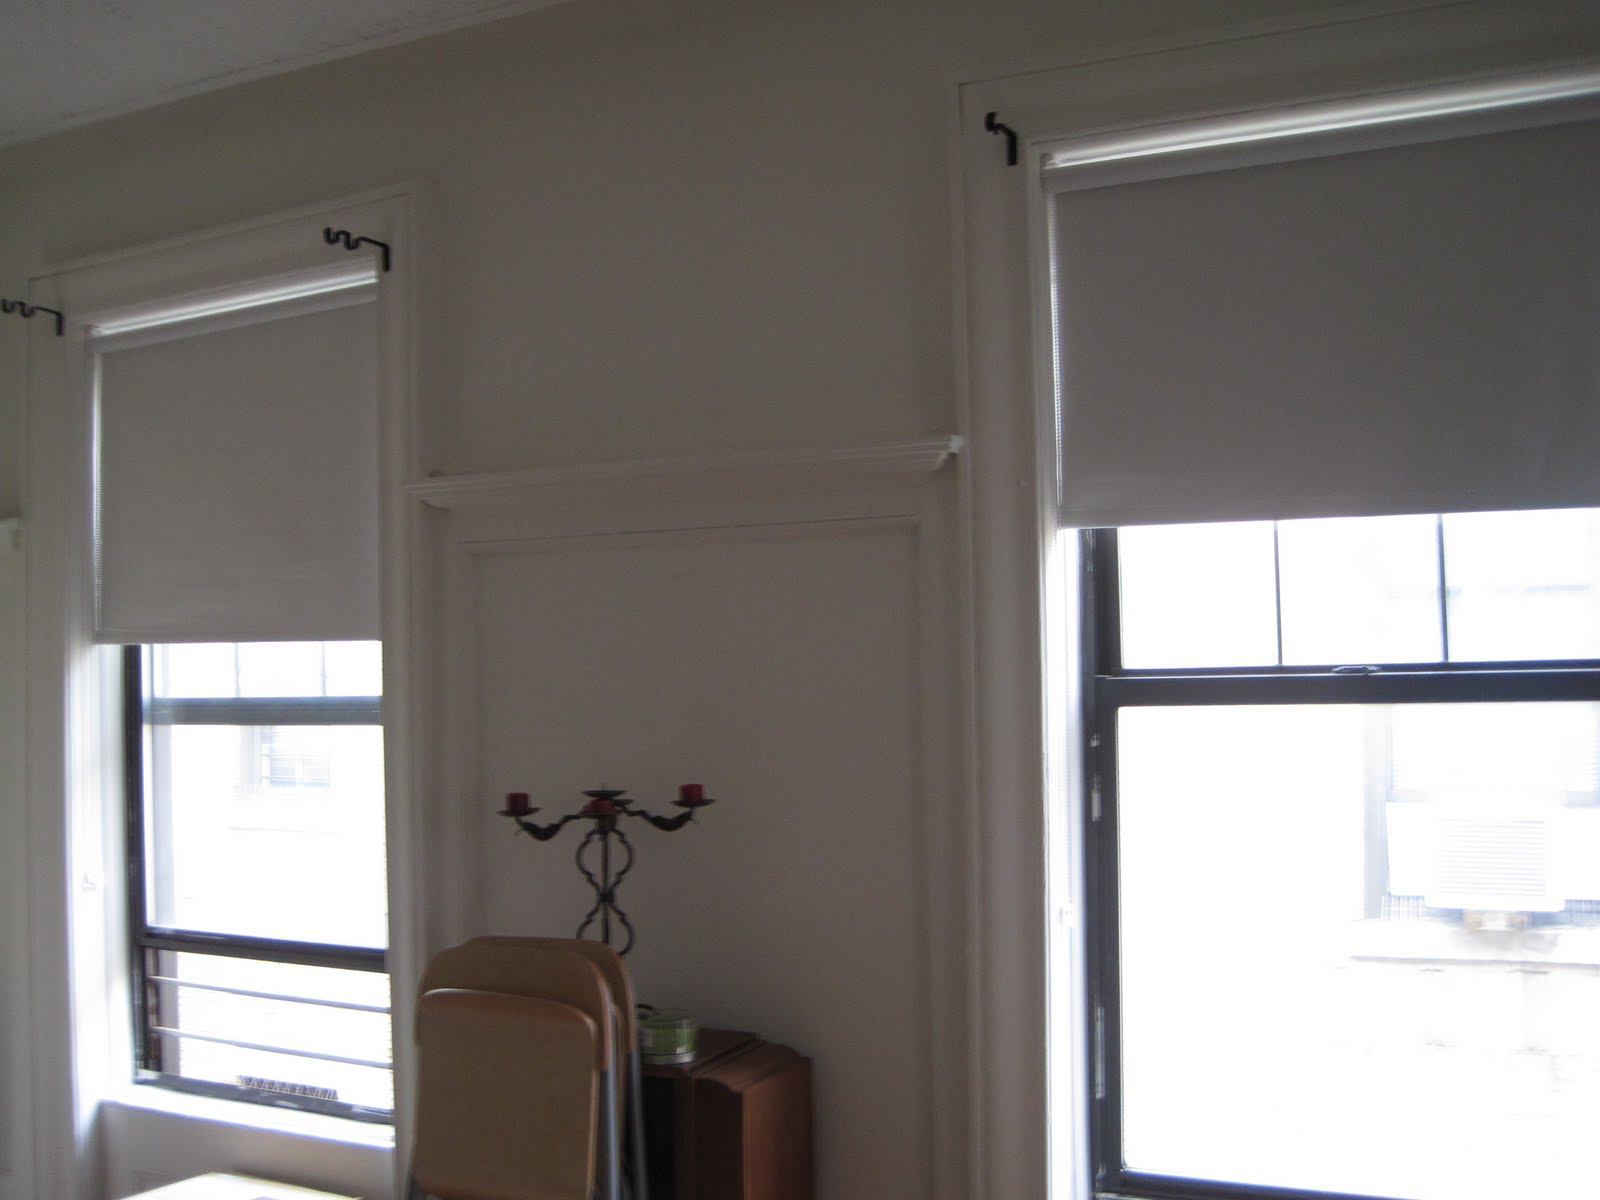 harlem home how to install tupplur shades from ikea